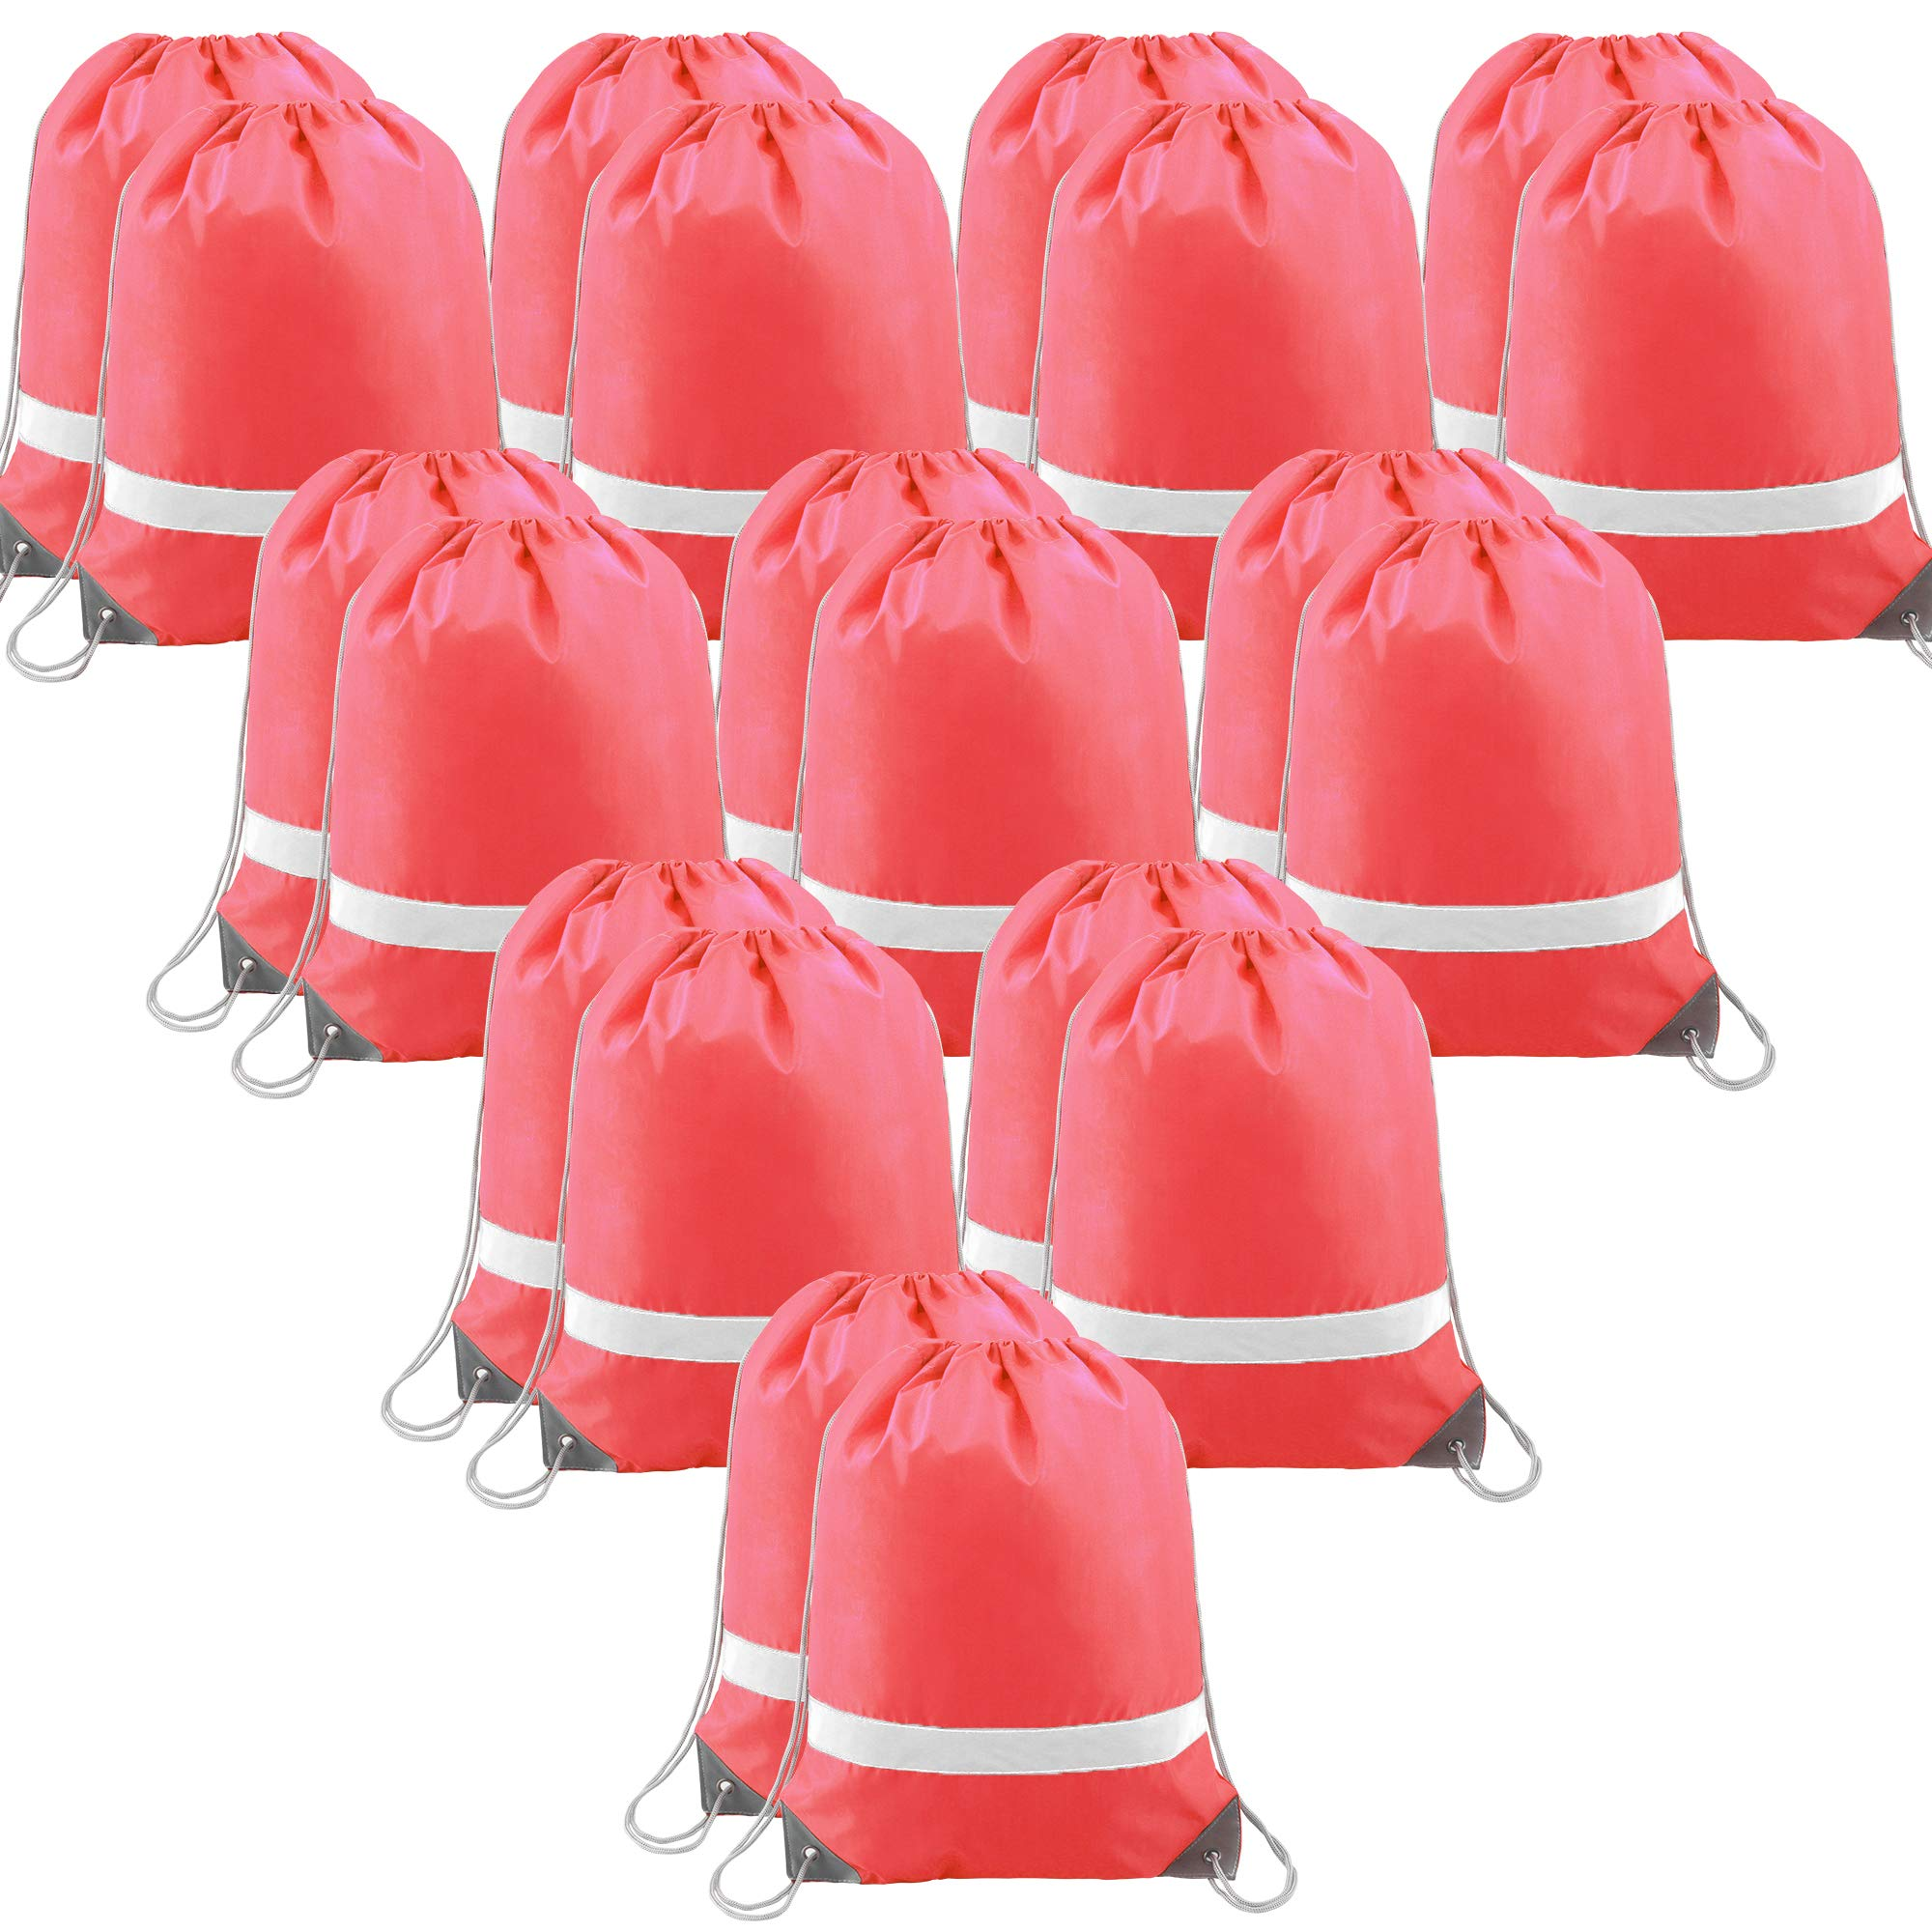 20 Pieces Pink-Drawstring-Backpack-Bags Reflective Gym Sack, Wholesale String Pack Storage Cinch Bags for Kids by BeeGreen